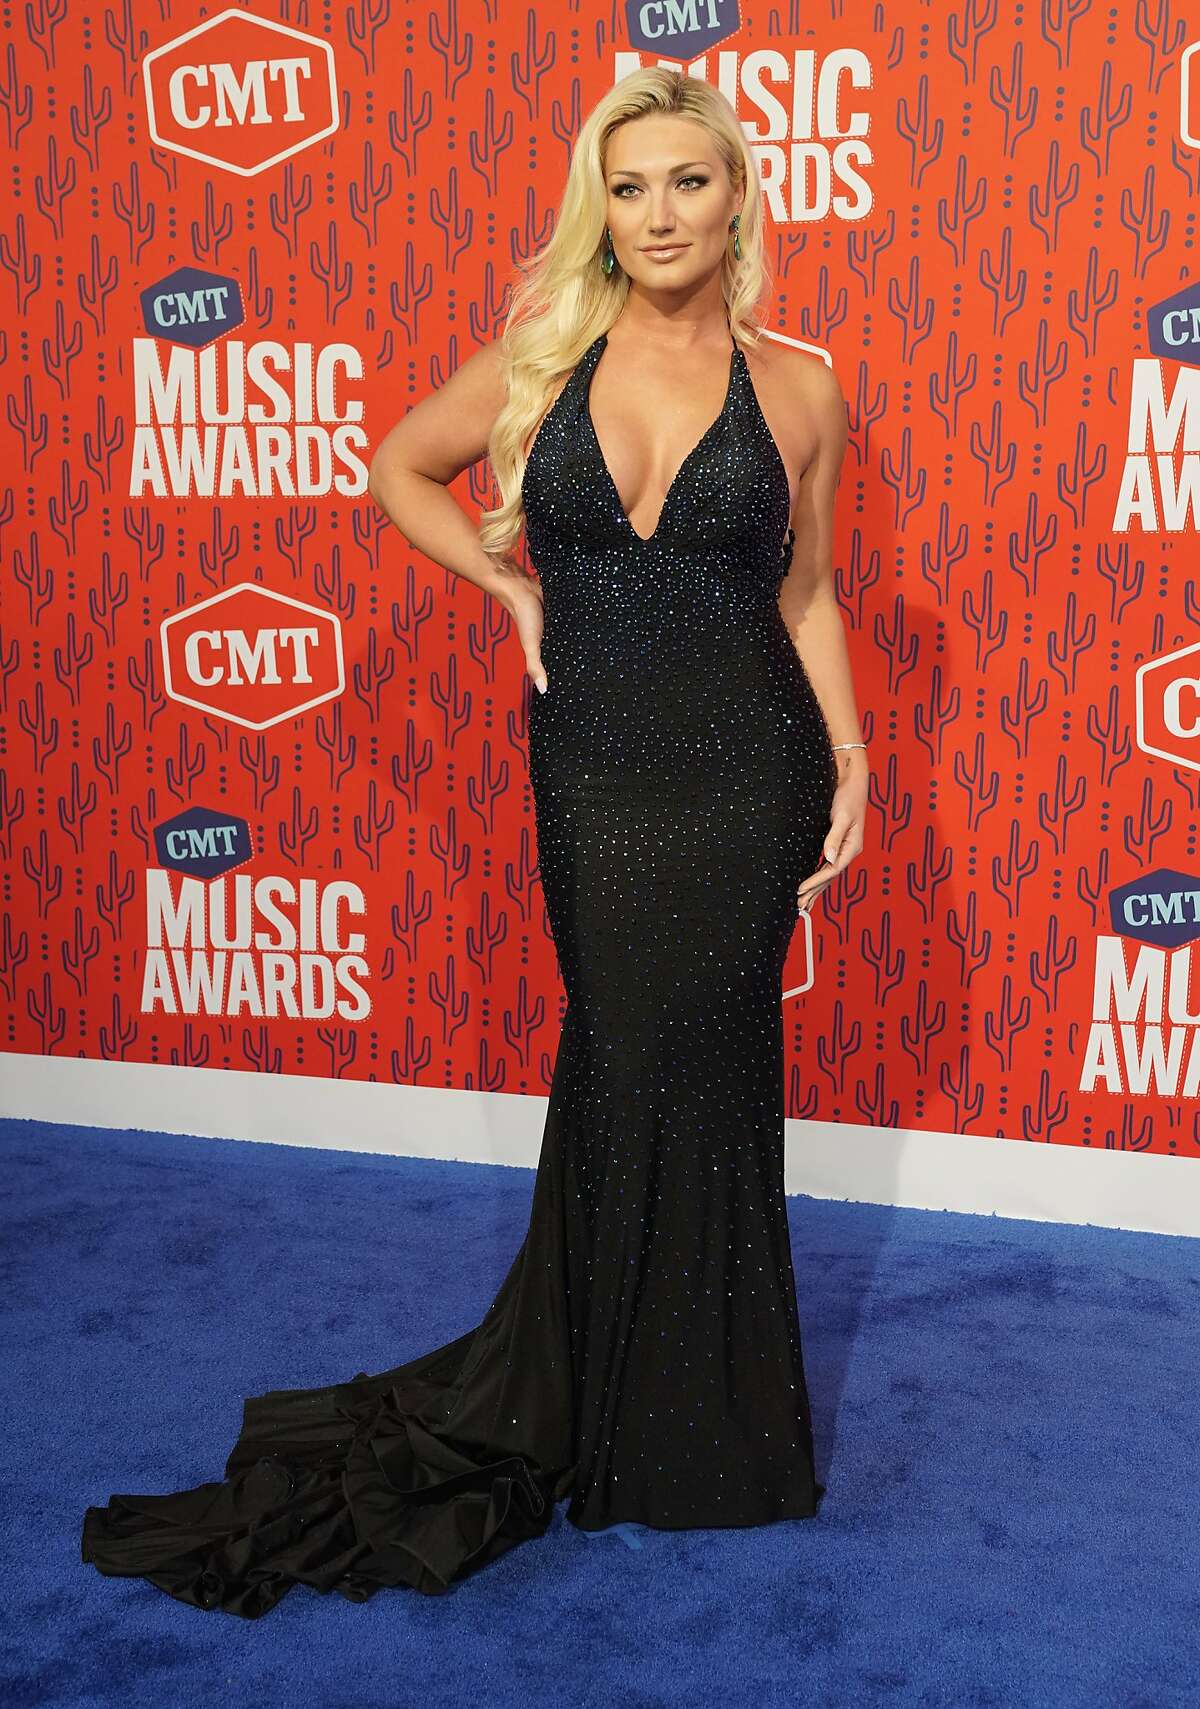 Brooke Hogan arrives at the CMT Music Awards on Wednesday, June 5, 2019, at the Bridgestone Arena in Nashville, Tenn. (AP Photo/Sanford Myers)